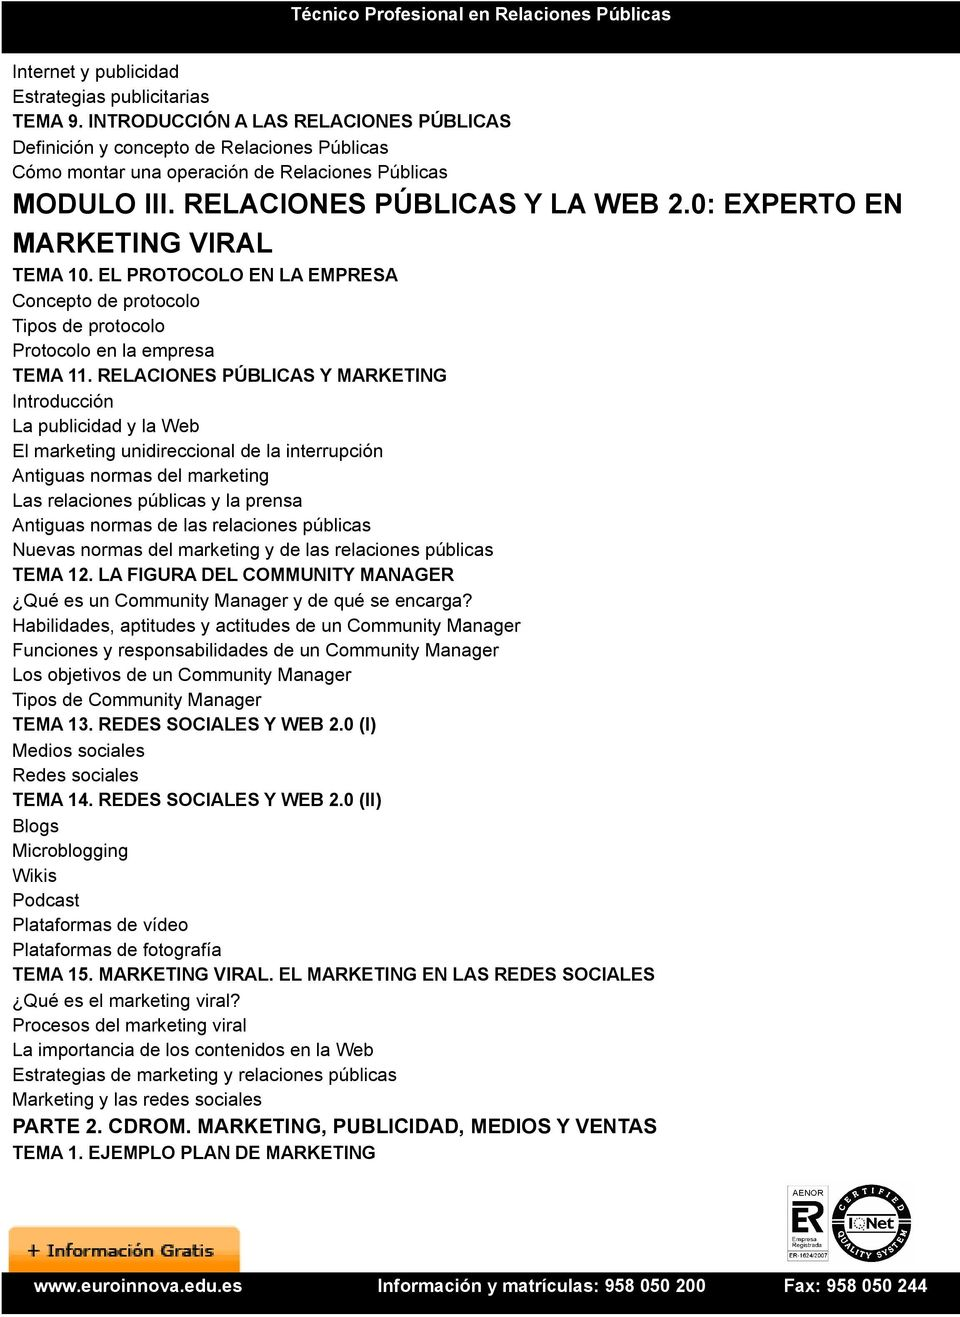 RELACIONES PÚBLICAS Y MARKETING Introducción La publicidad y la Web El marketing unidireccional de la interrupción Antiguas normas del marketing Las relaciones públicas y la prensa Antiguas normas de